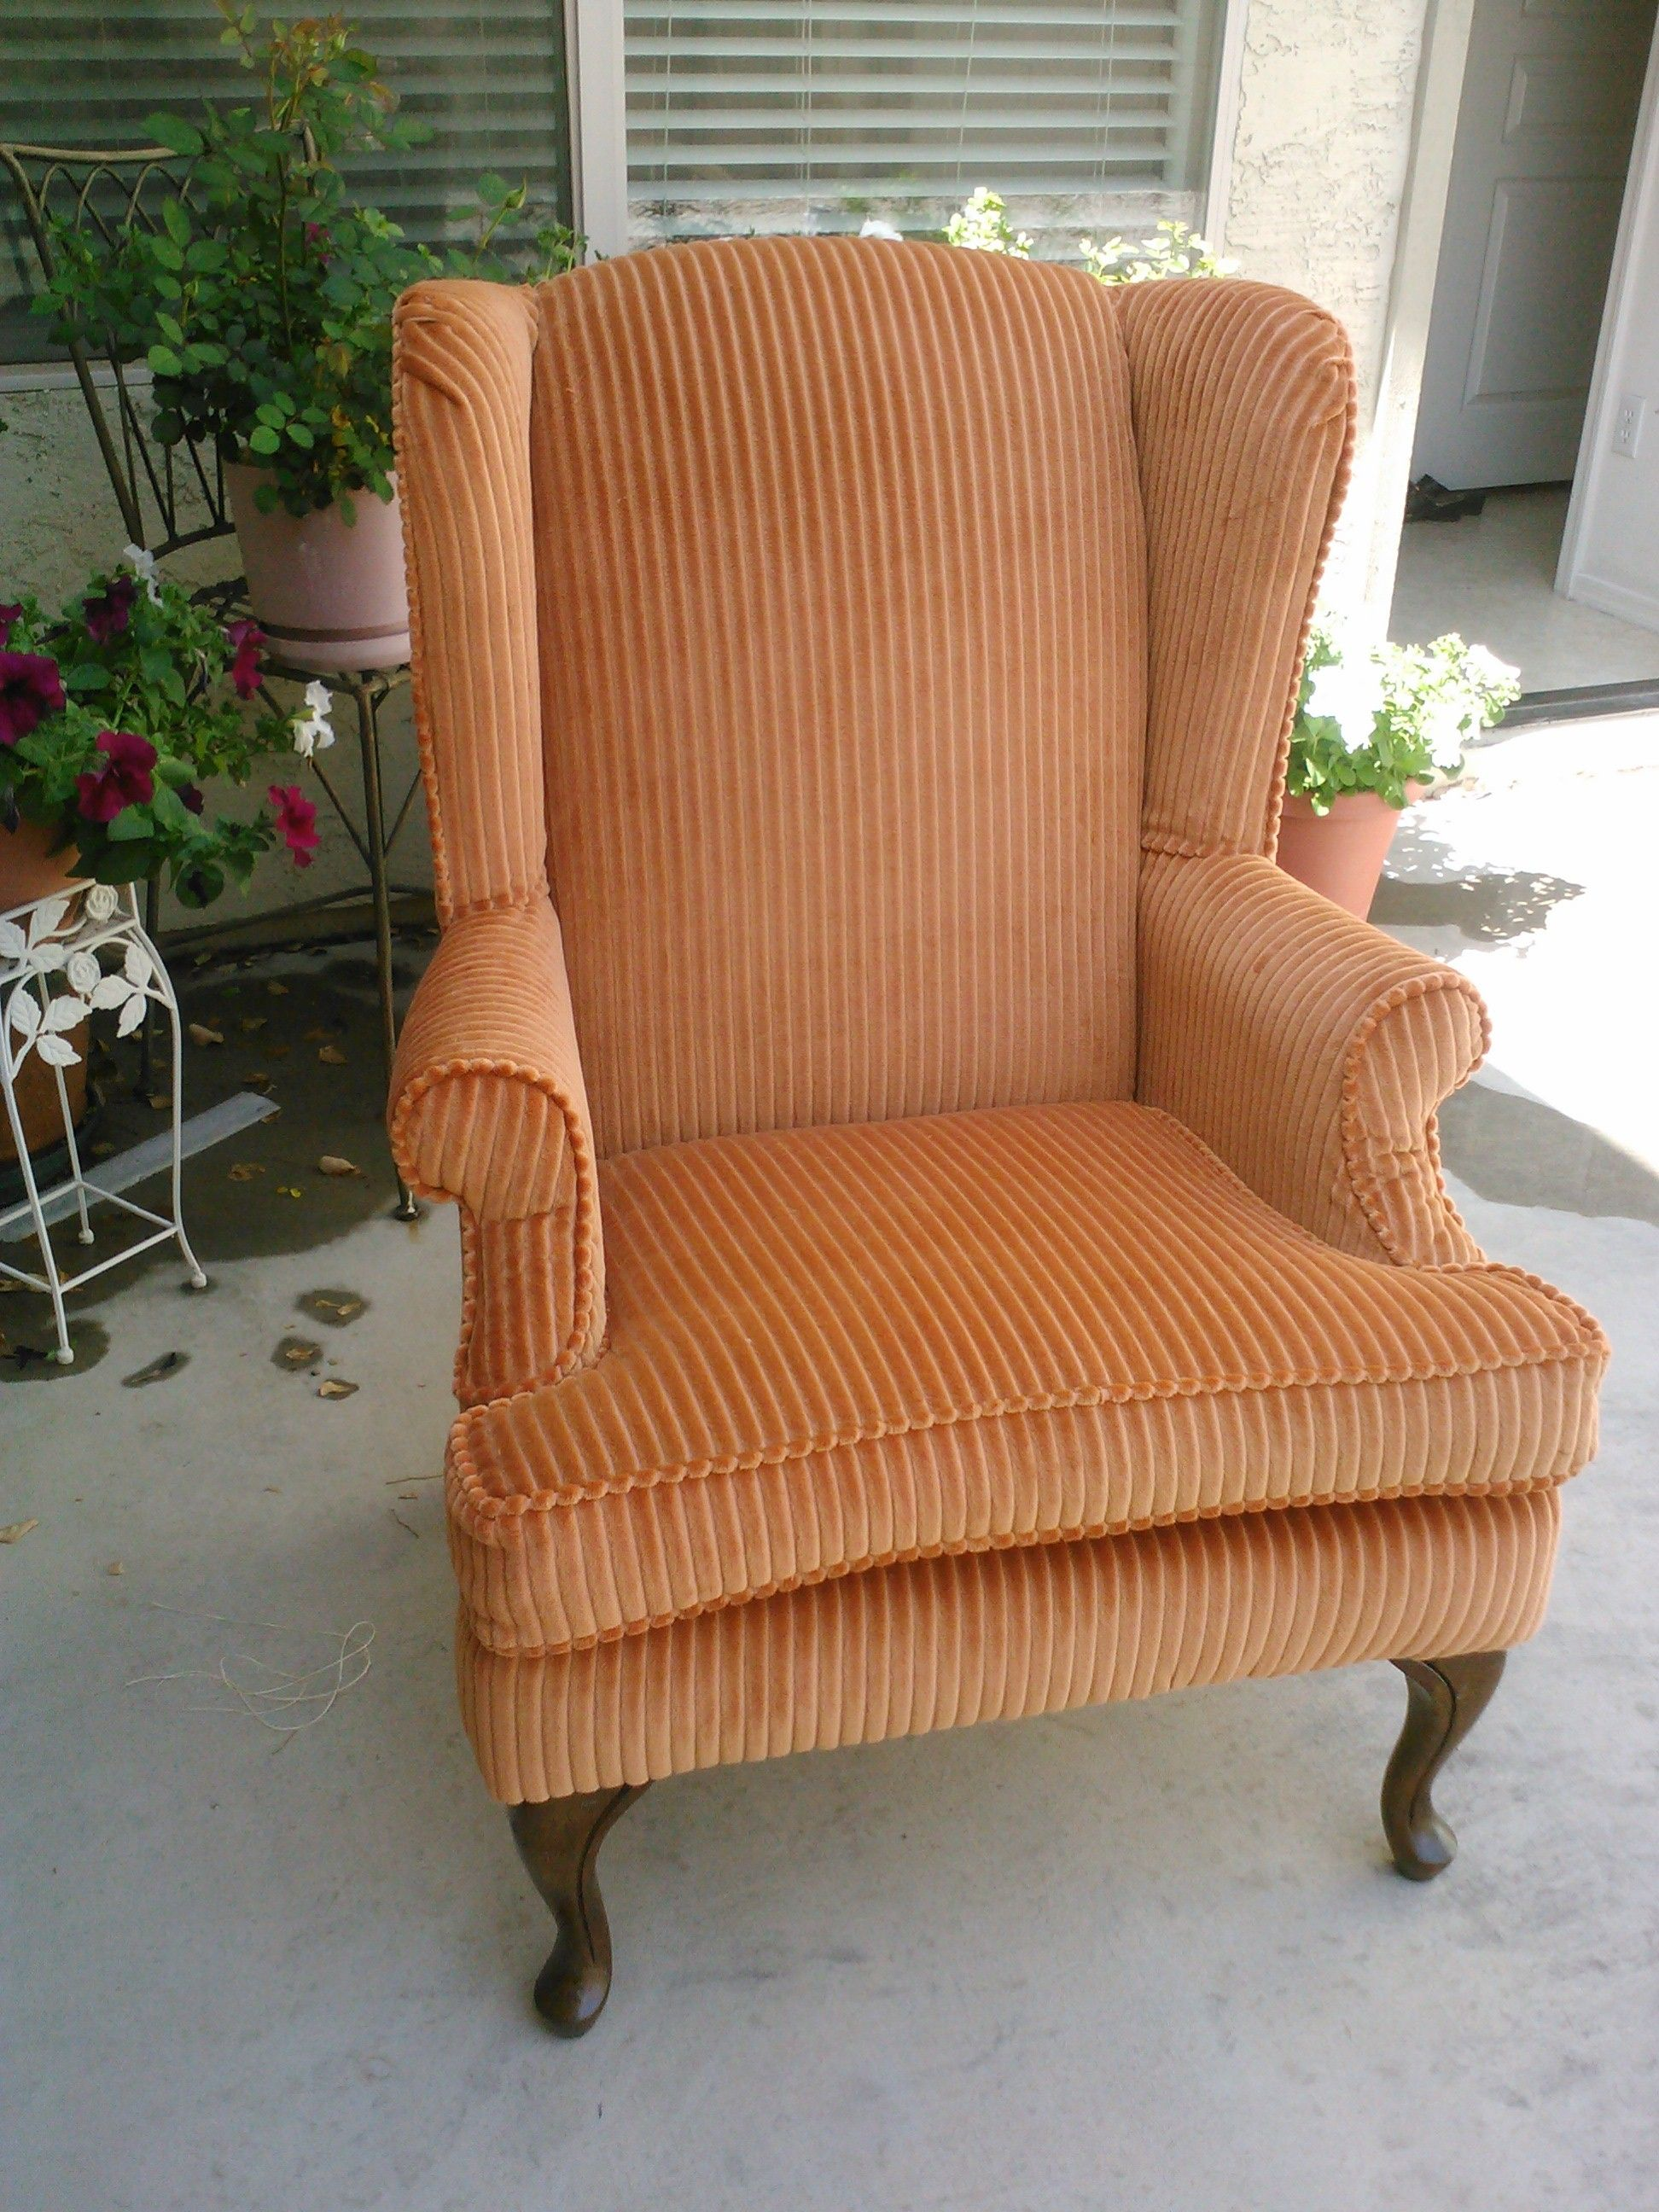 Wide Wale Orange Corduroy Fabric On Winged Back Chair.